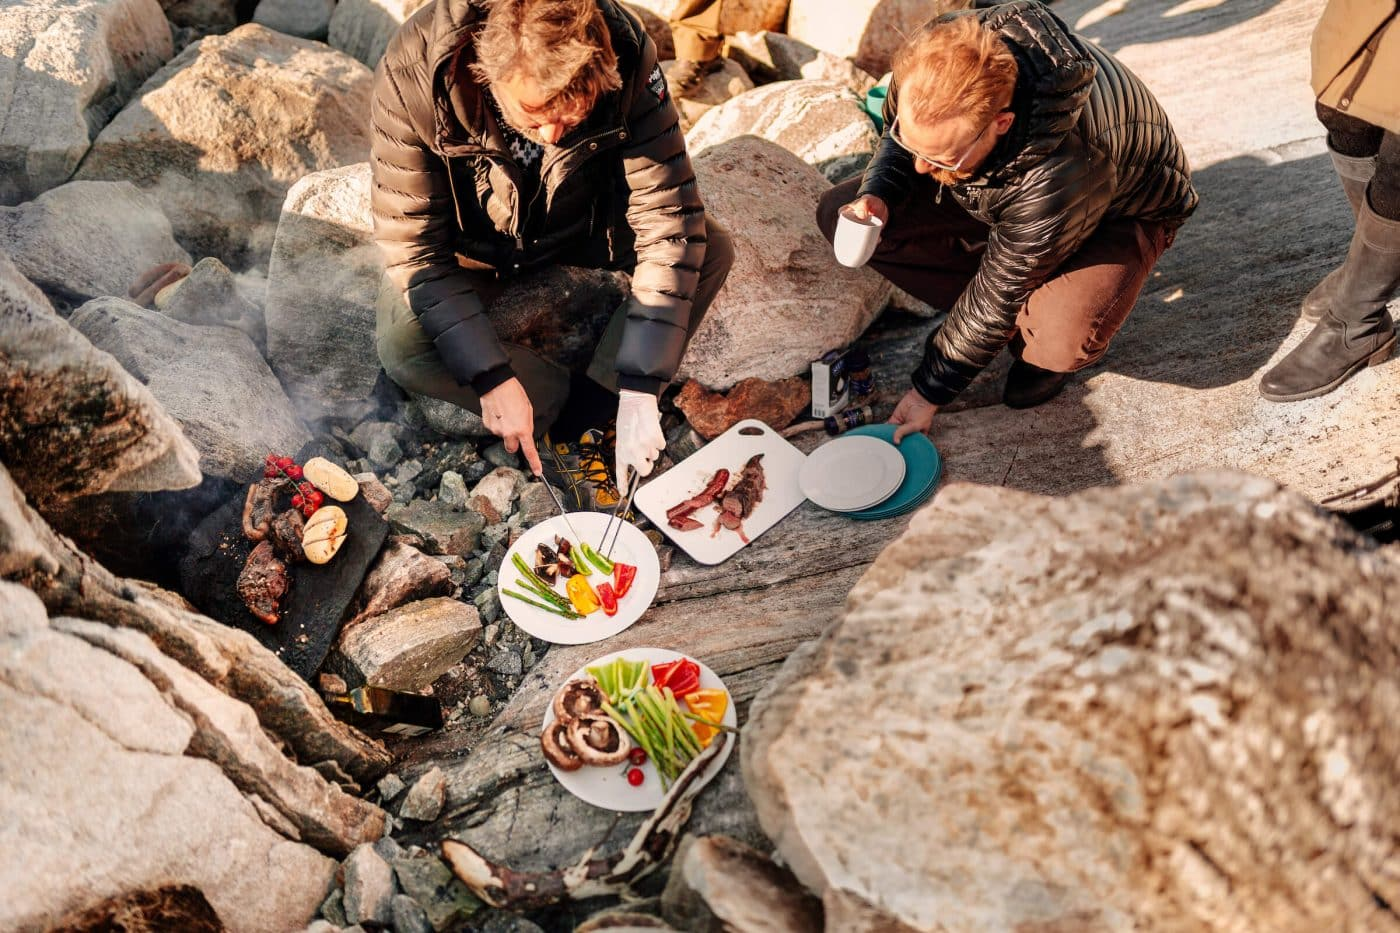 Friends preparing a meal on the rocks on the beach in Nuuk in Greenland. By Rebecca Gustafsson